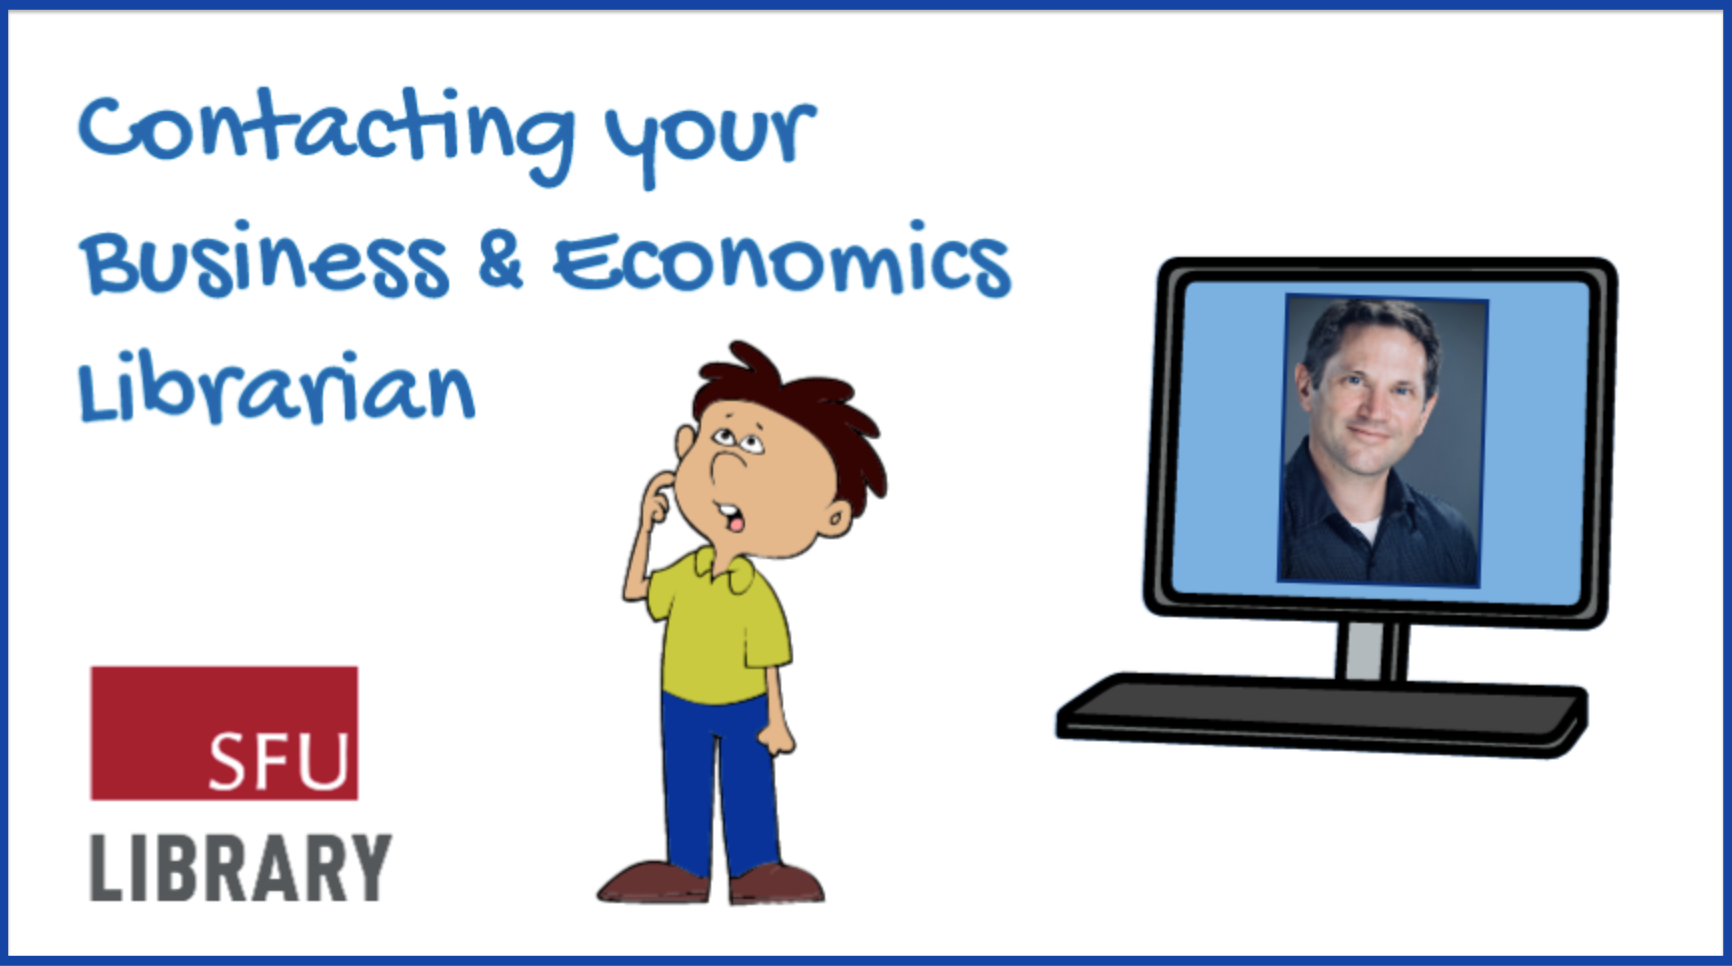 """Screen capture of first screen of video, featuring the title """"Contacting Your Business & Economics Librarian"""""""